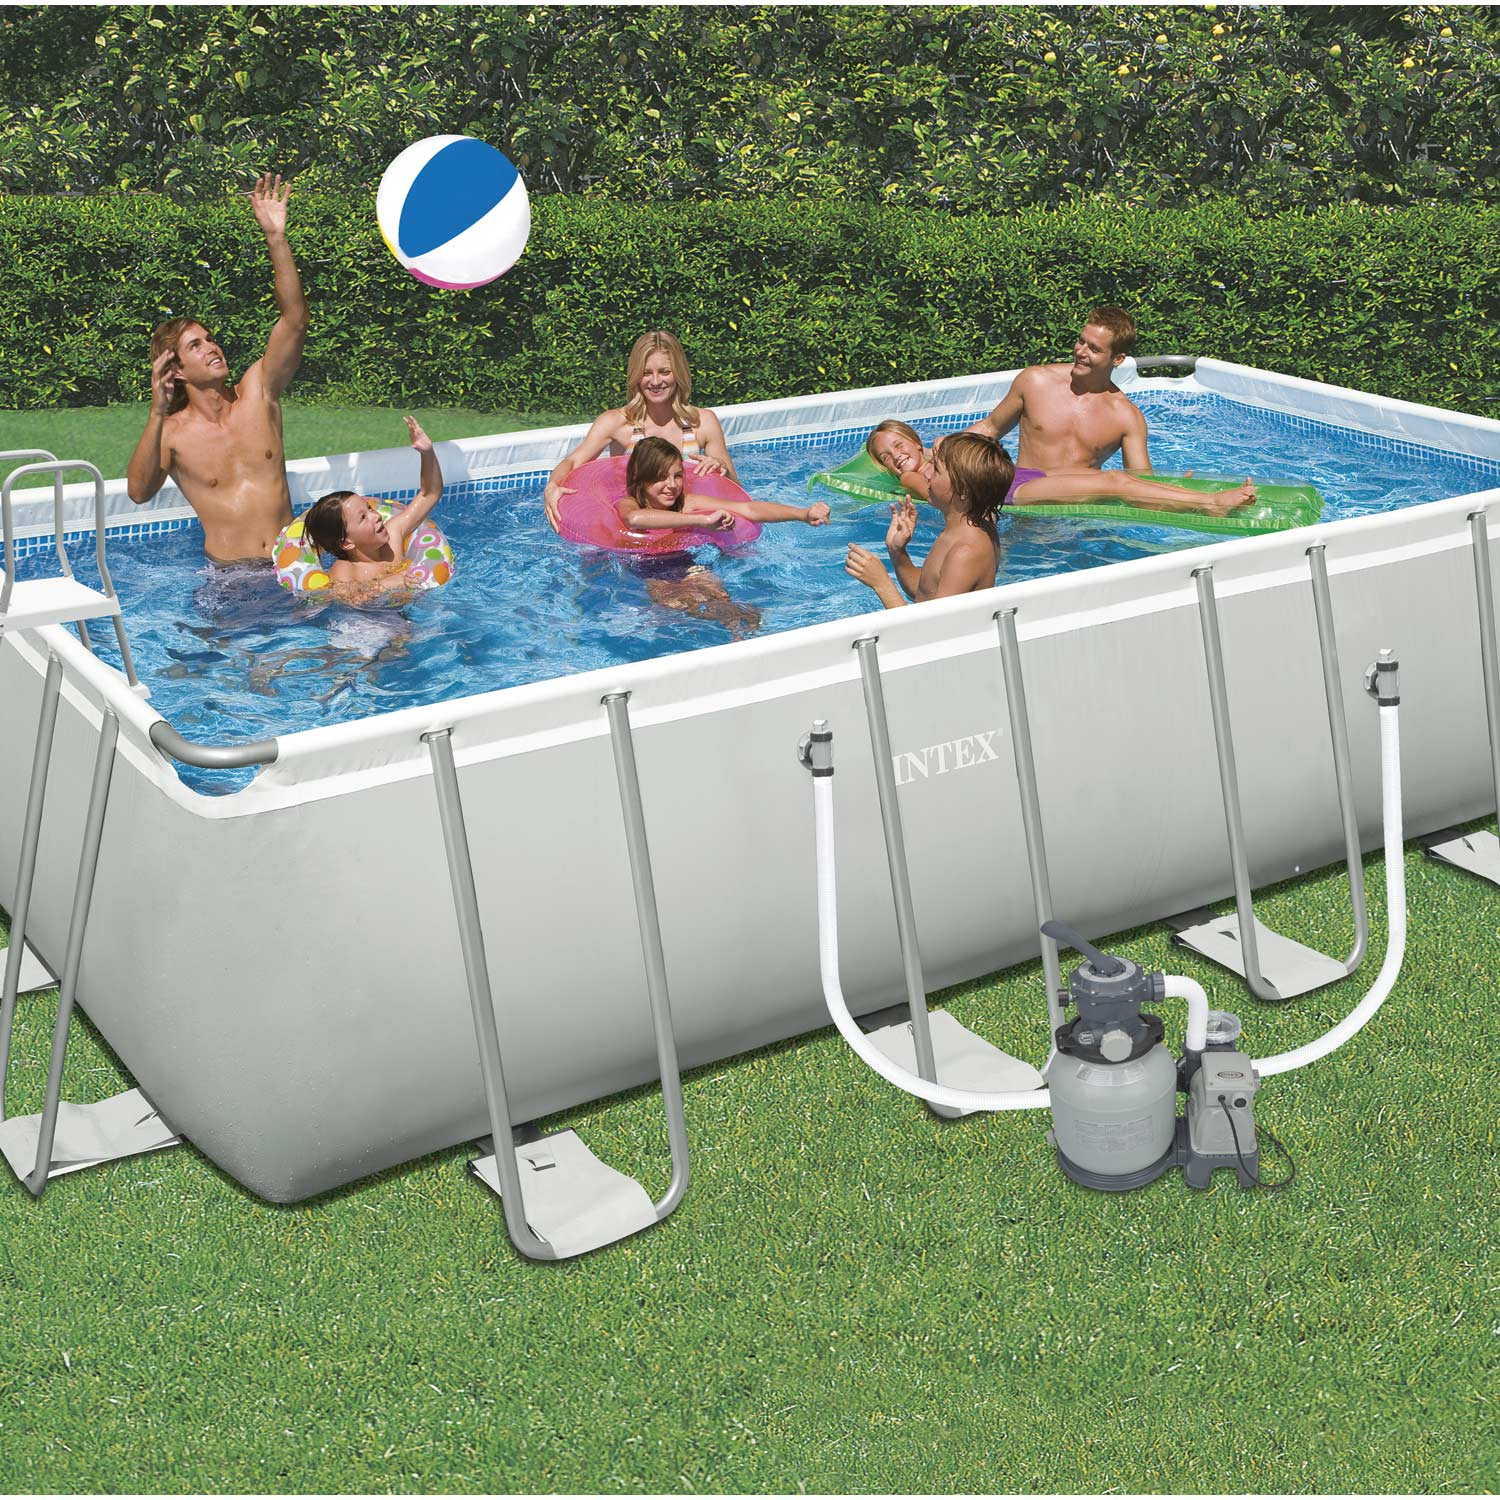 Piscine hors sol autoportante tubulaire ultra silver intex for Piscine hors sol hauteur 1m50